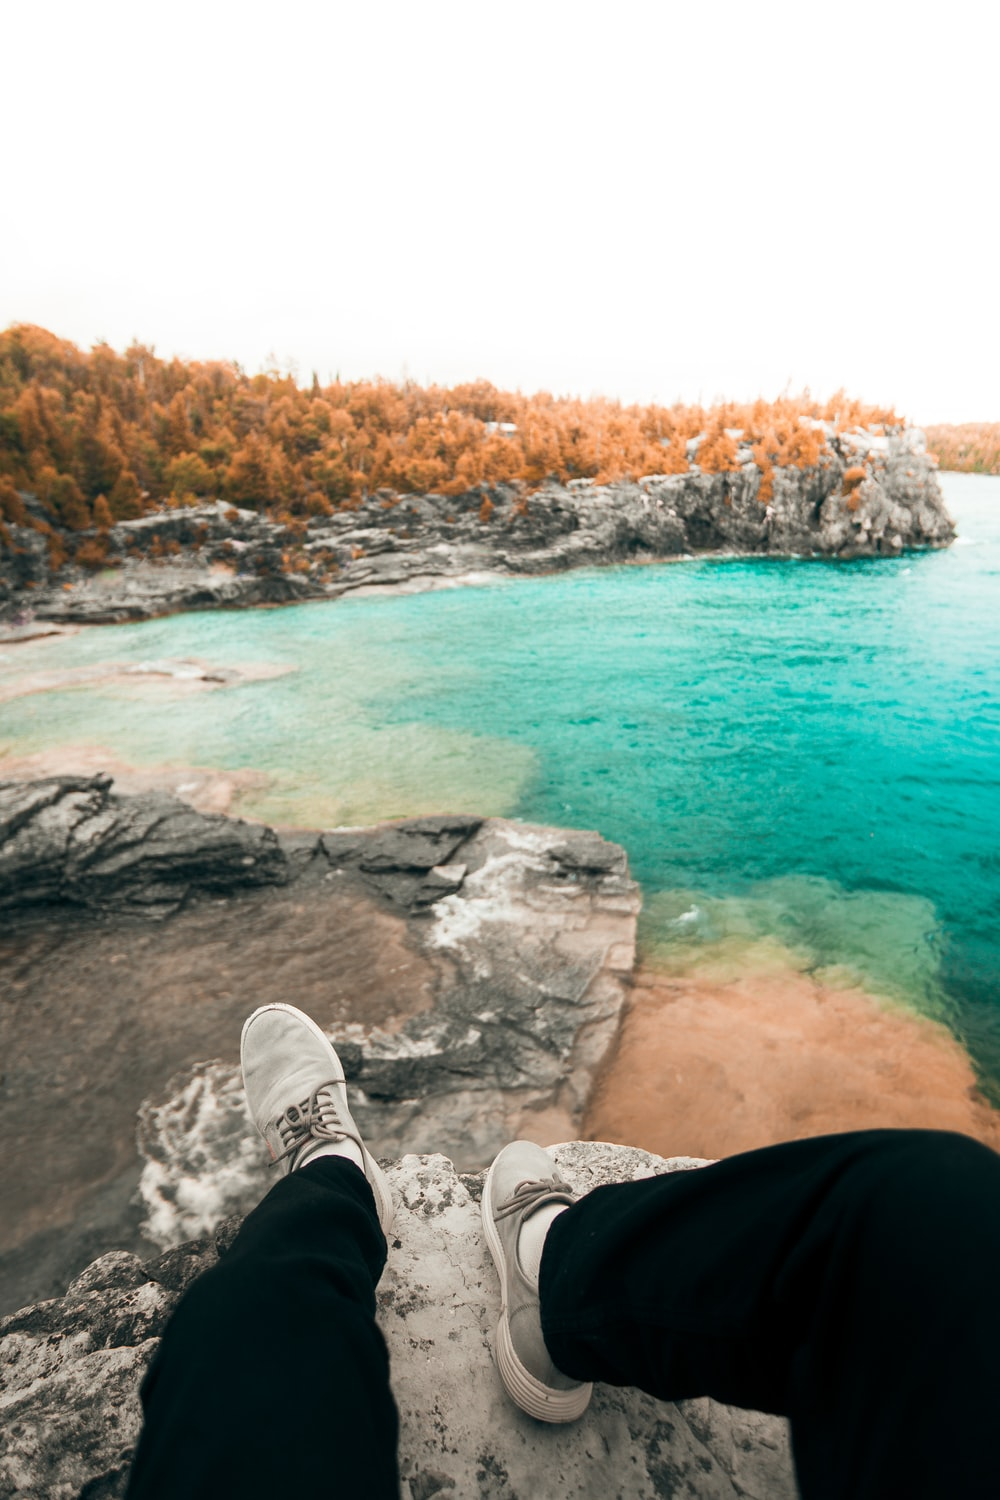 person sitting on cliff viewing body of water during daytime